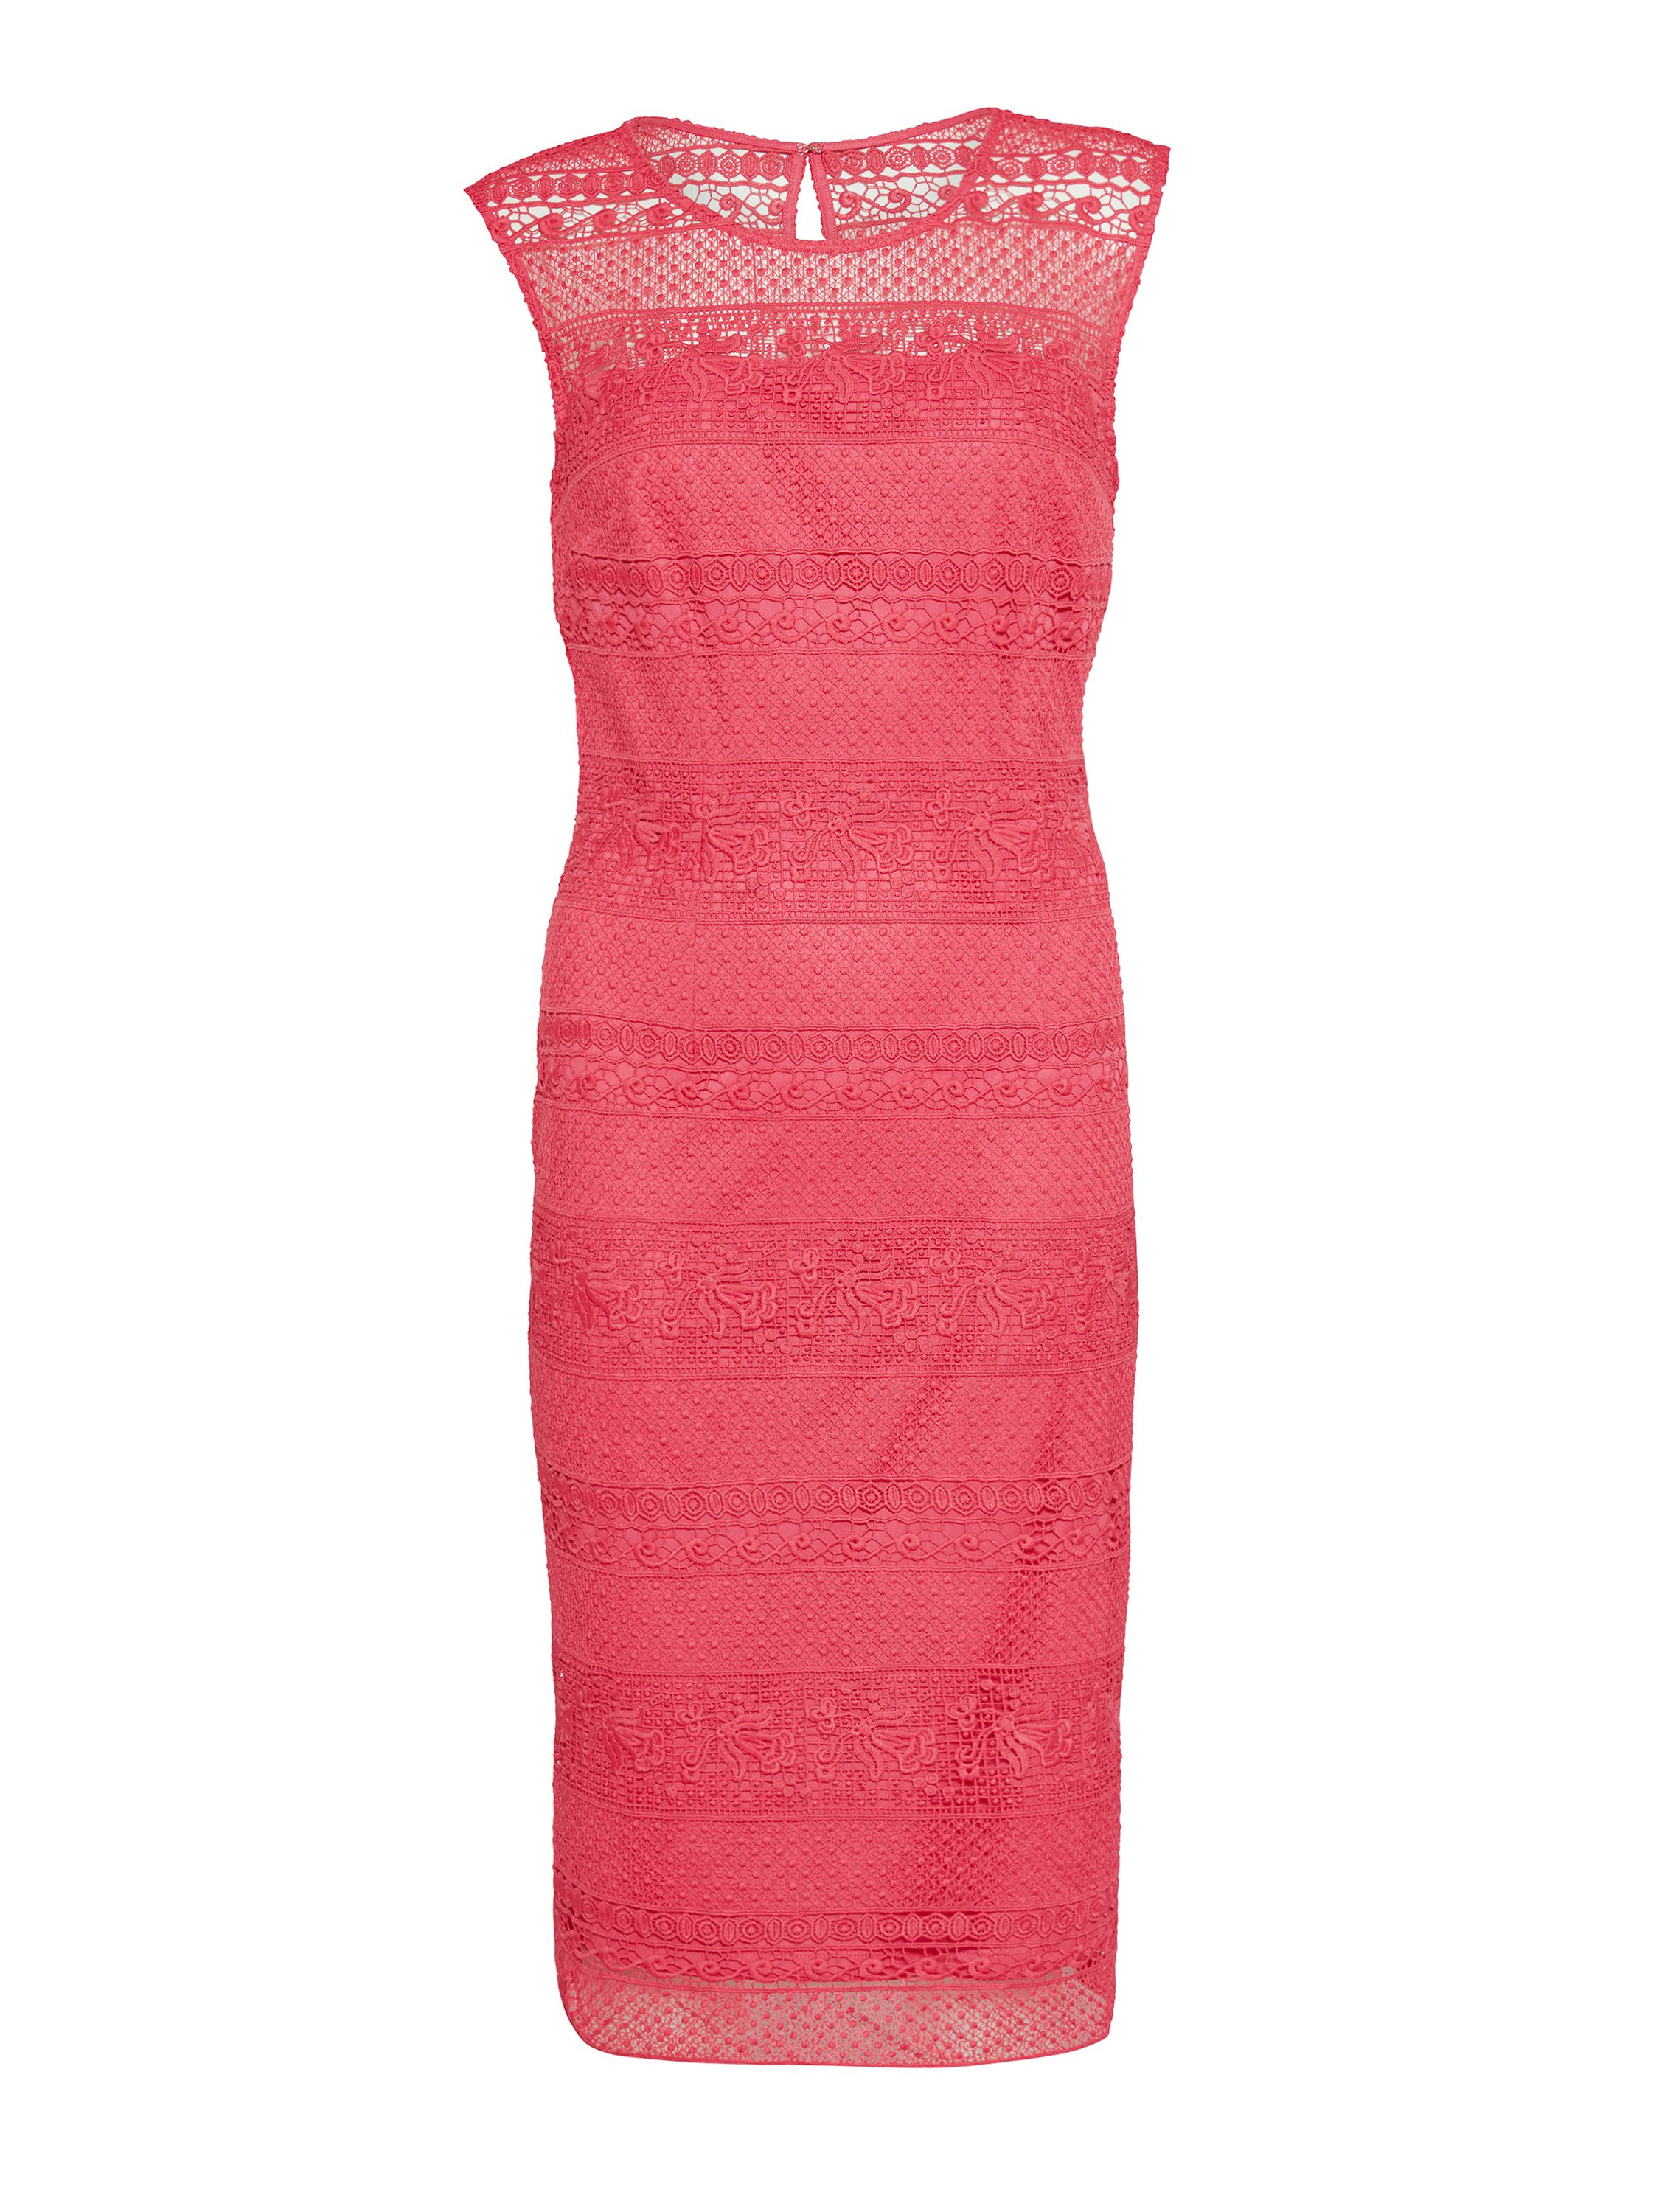 Gina Bacconi Multi Open Panel Embroidery Dress, Red